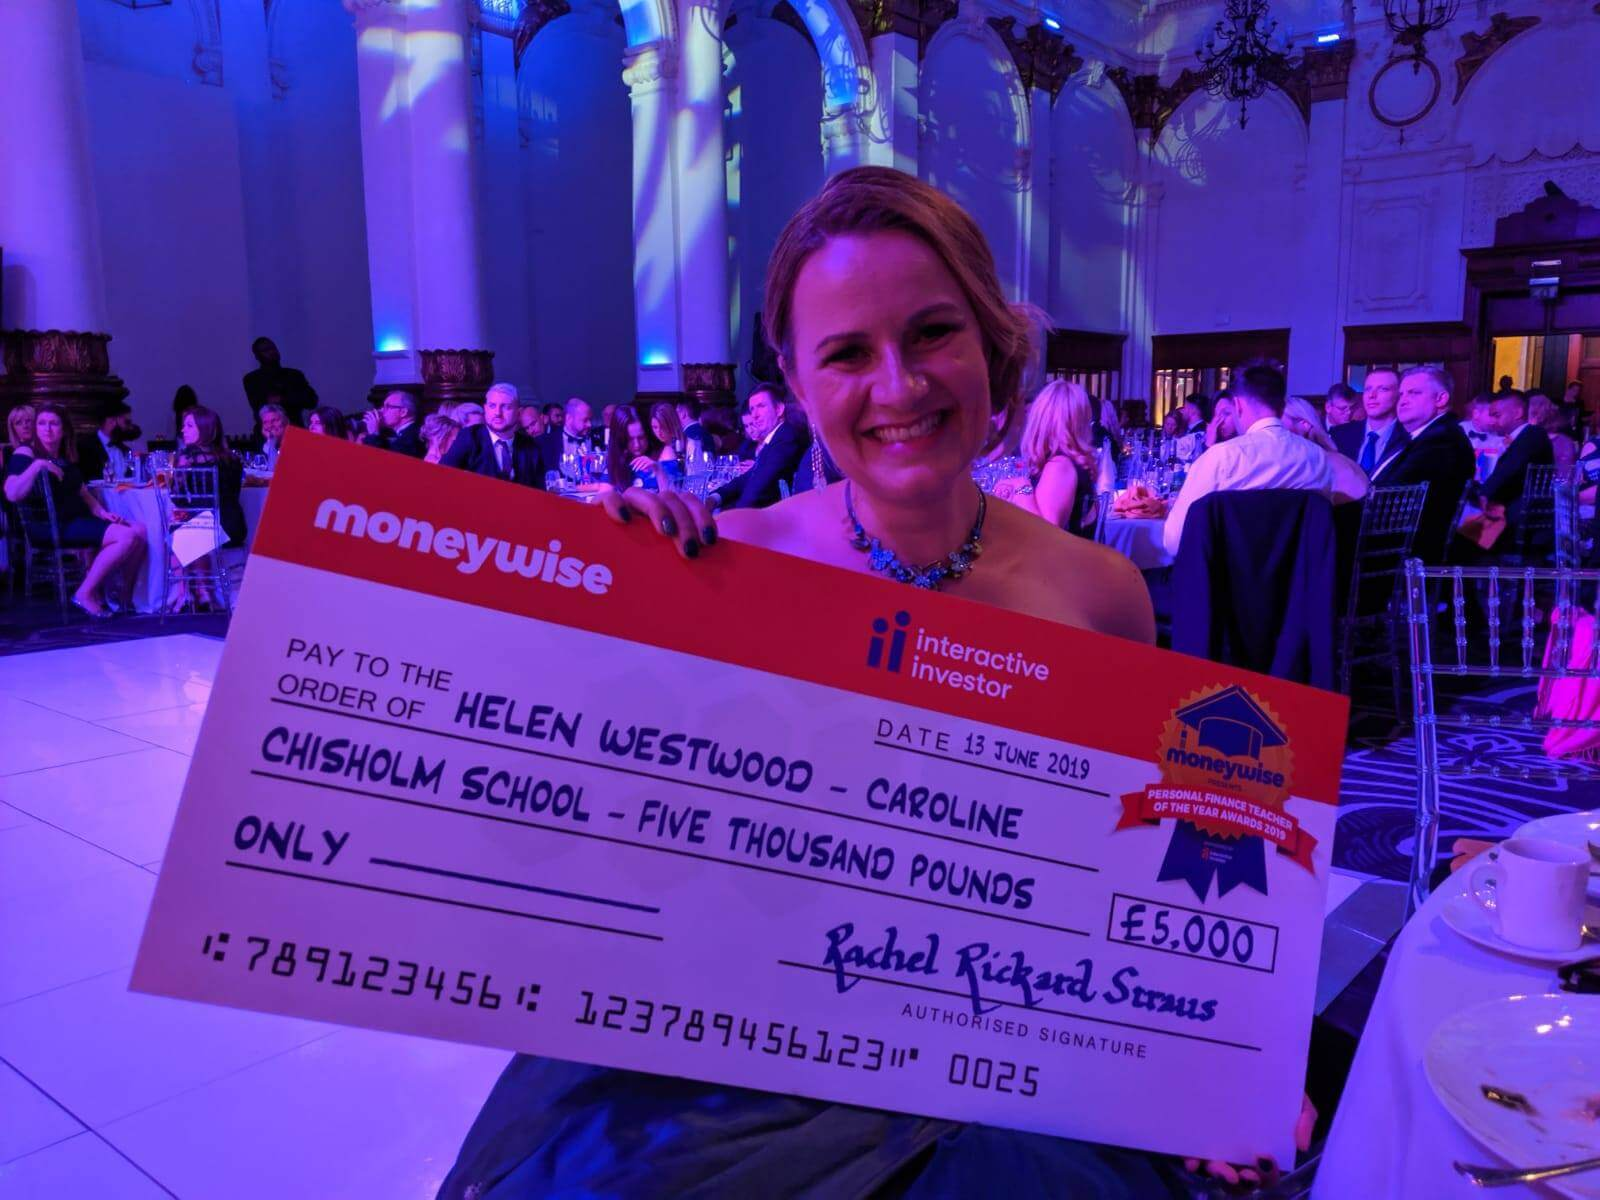 Helen Westwood Personal Finance Teacher of the year 2019 Moneywise